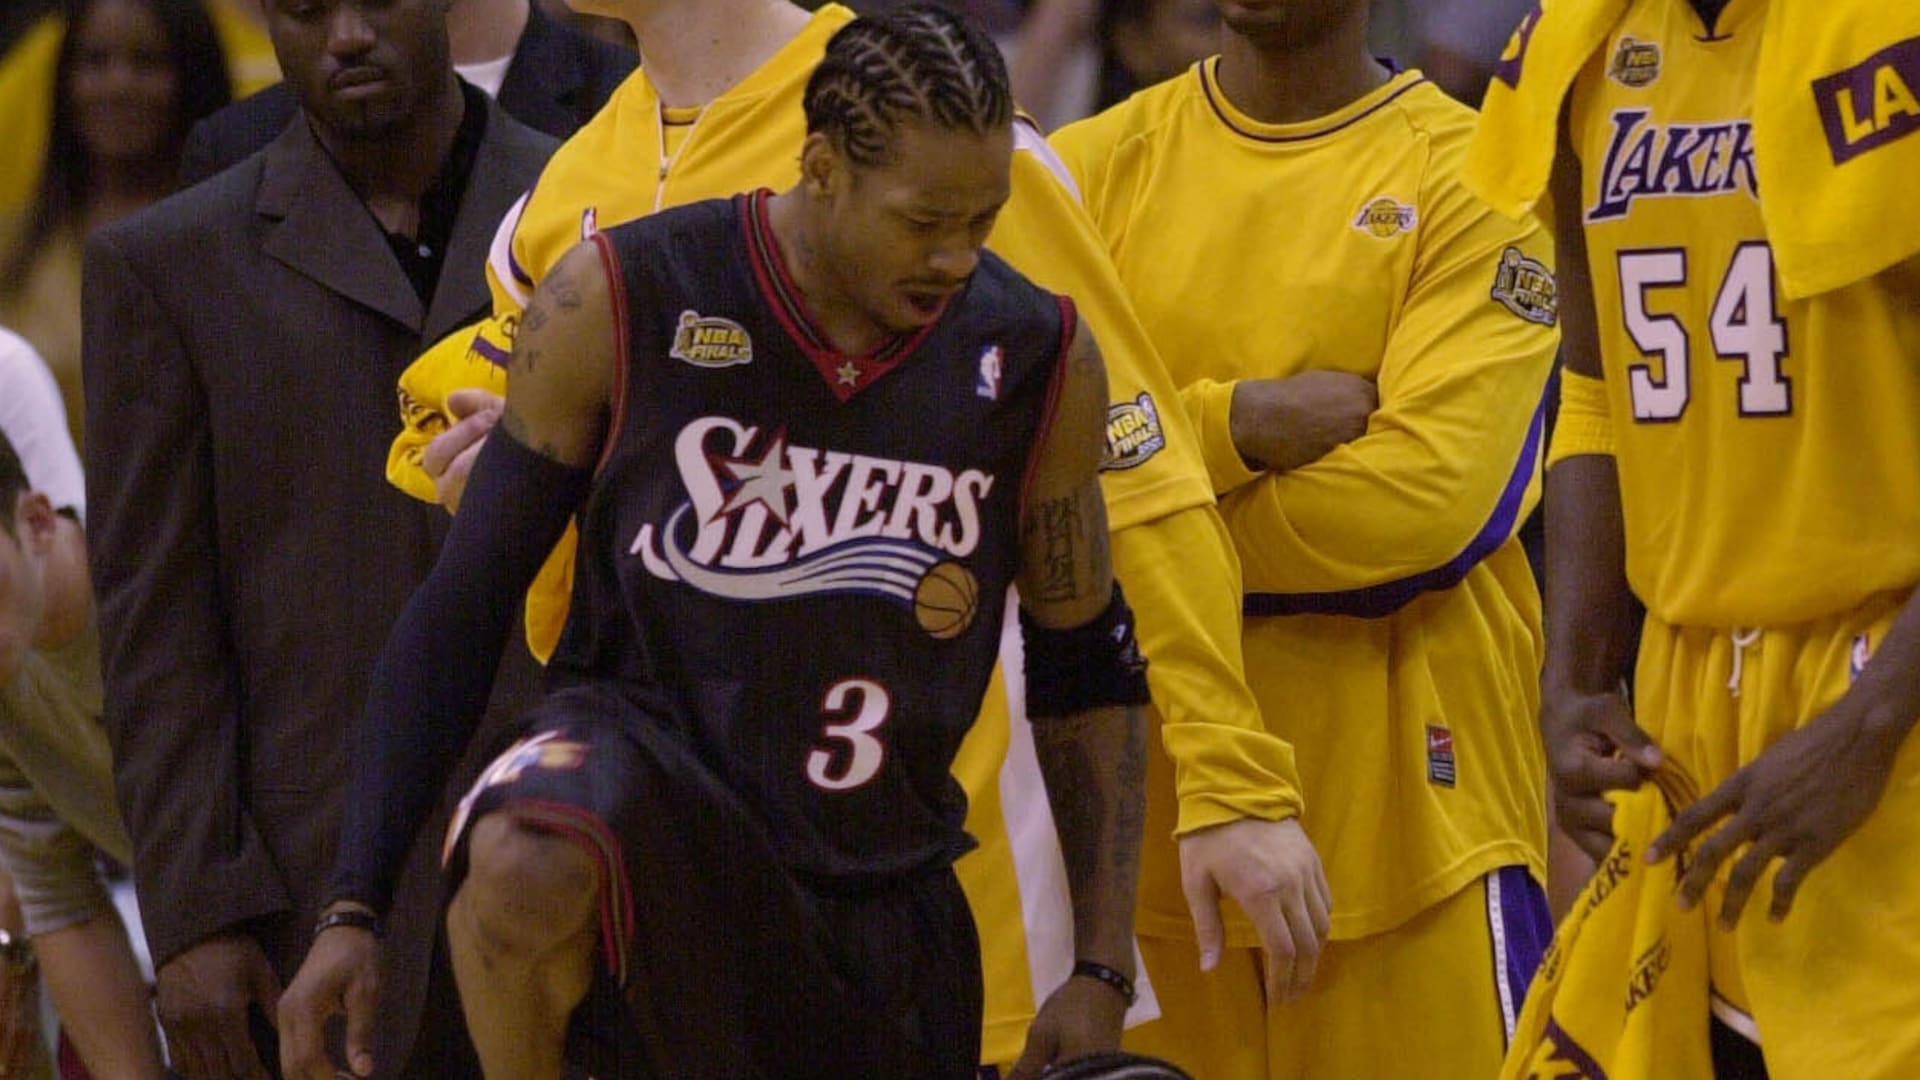 Top NBA Finals moments: Allen Iverson steps over Tyronn Lue in 2001